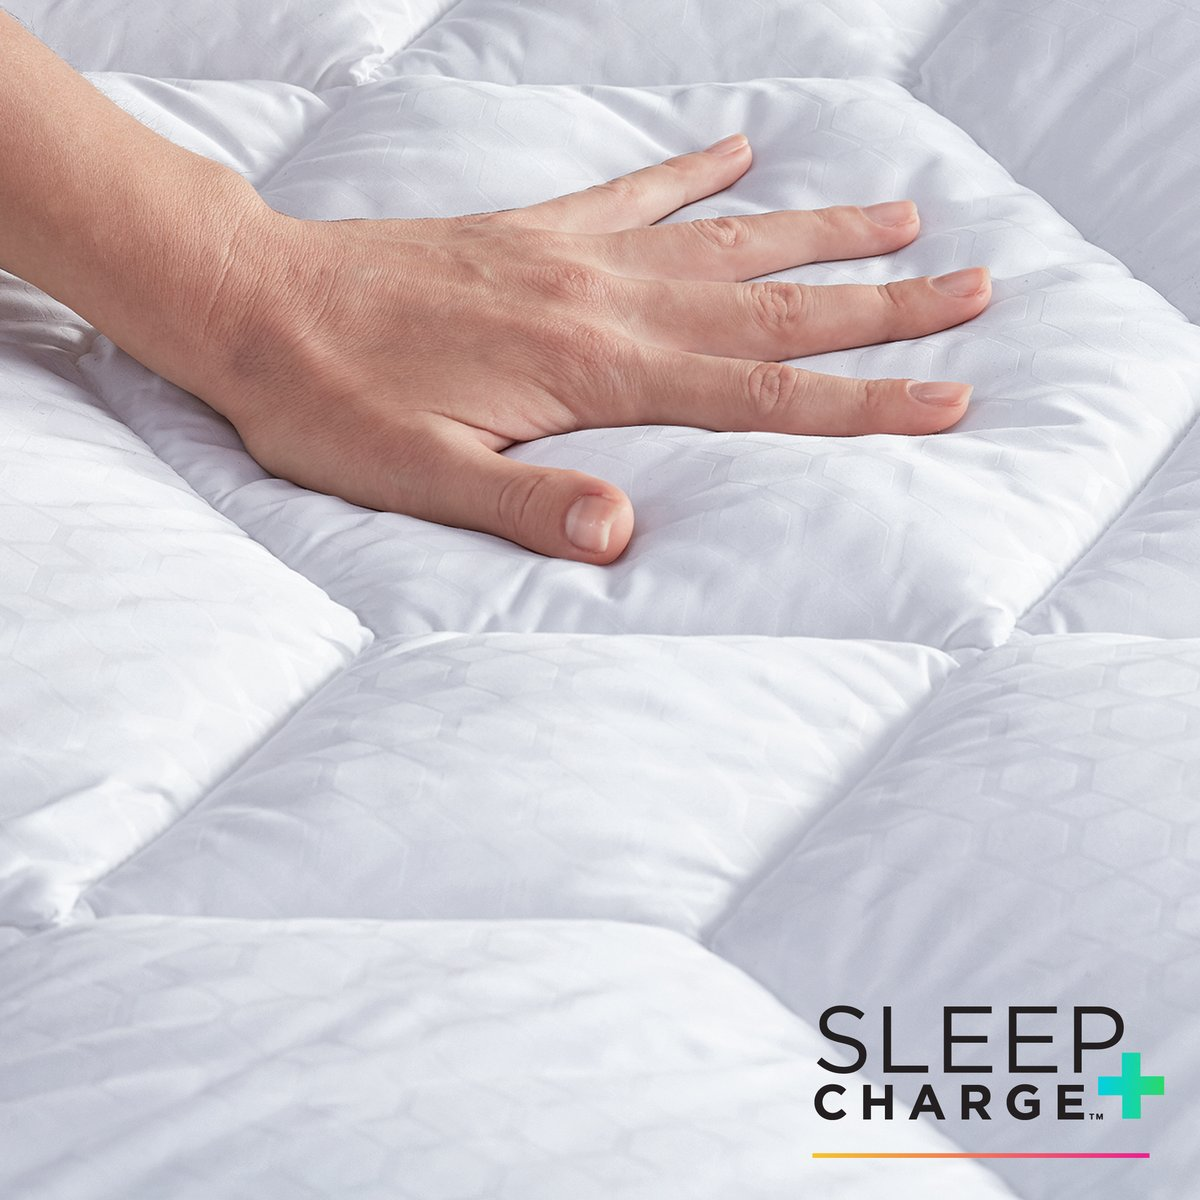 When you use a SleepCharge powered by Nanobionic product, the blend of minerals embedded in the fabric are activated by body heat, also known as energy. SleepCharge returns energy back to you, stimulating local blood flow, which enhances faster recovery. pic.twitter.com/hHGcOTur80